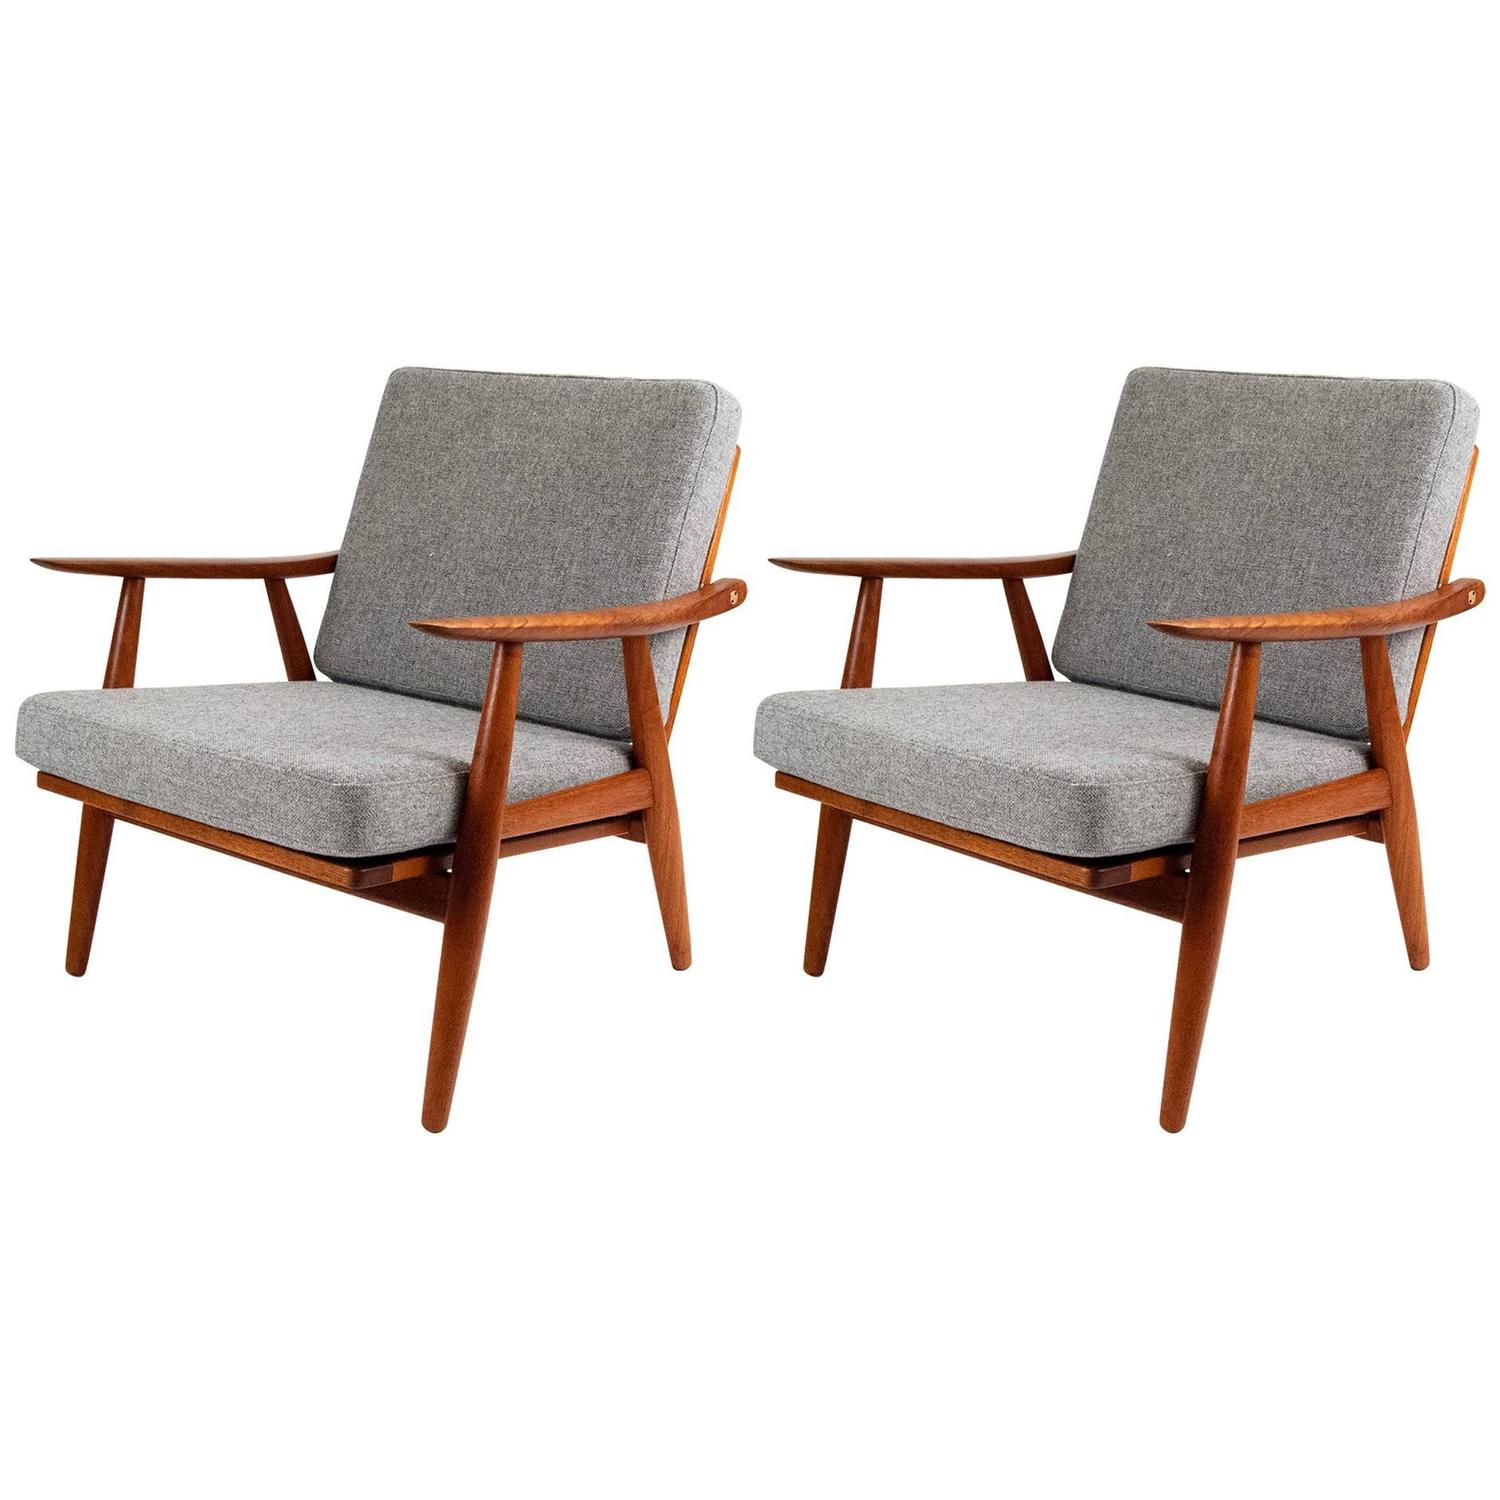 Hans wegner ge 270 danish teak lounge chairs at 1stdibs - Danish furniture designers ...